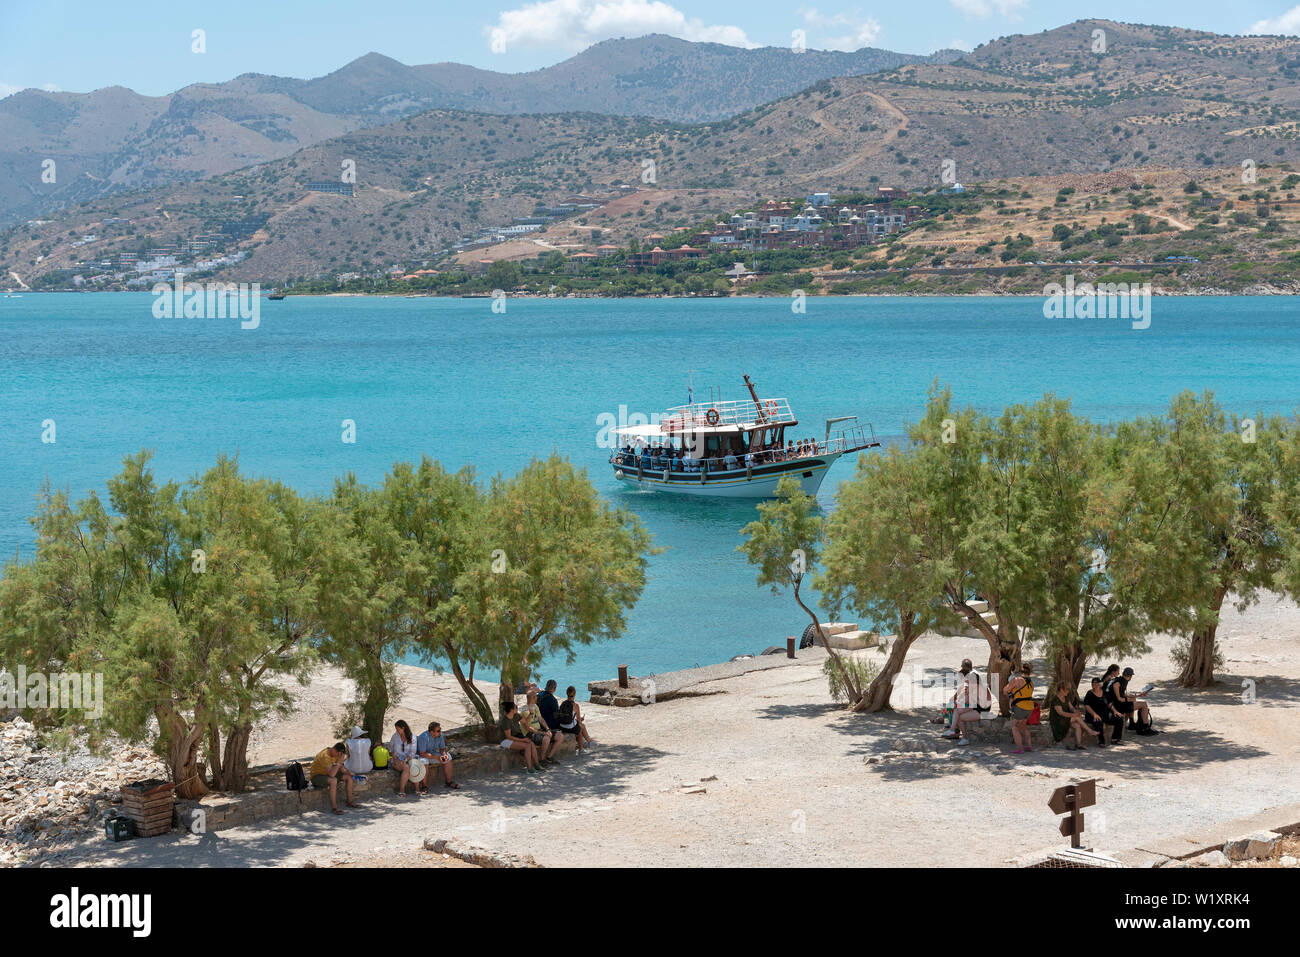 Spinalonga Island, Crete, Greece. June 2019.Small passenger ferry transporting tourists to Spinalonga a former Leper Colony. Background of mainland Cr - Stock Image